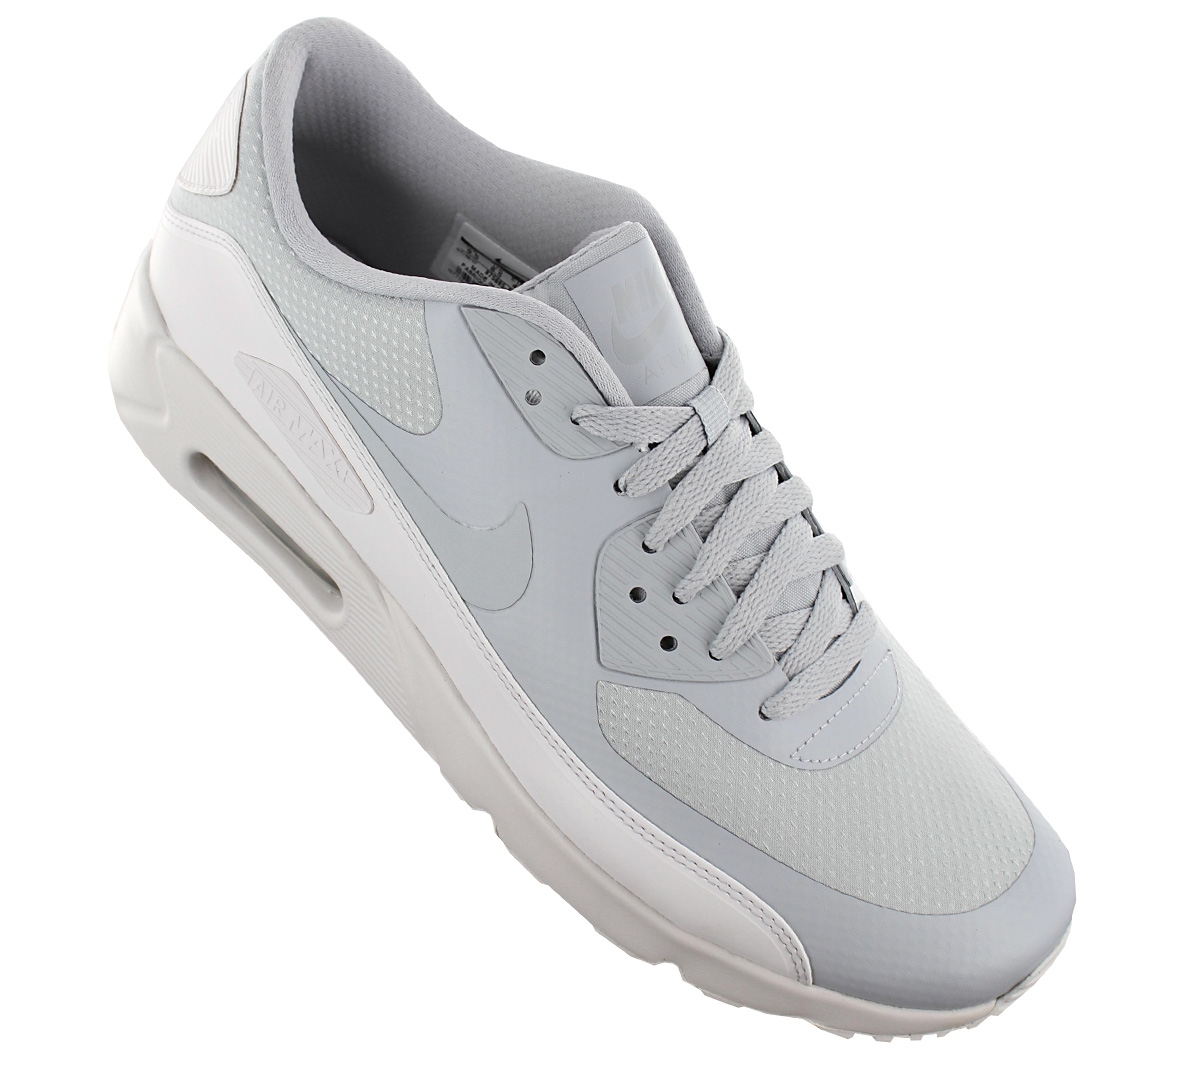 outlet store 11167 bcfbc Nike Air Max 90 Ultra 2.0 Essential Men s Sneakers Shoes Grey 875695 ...